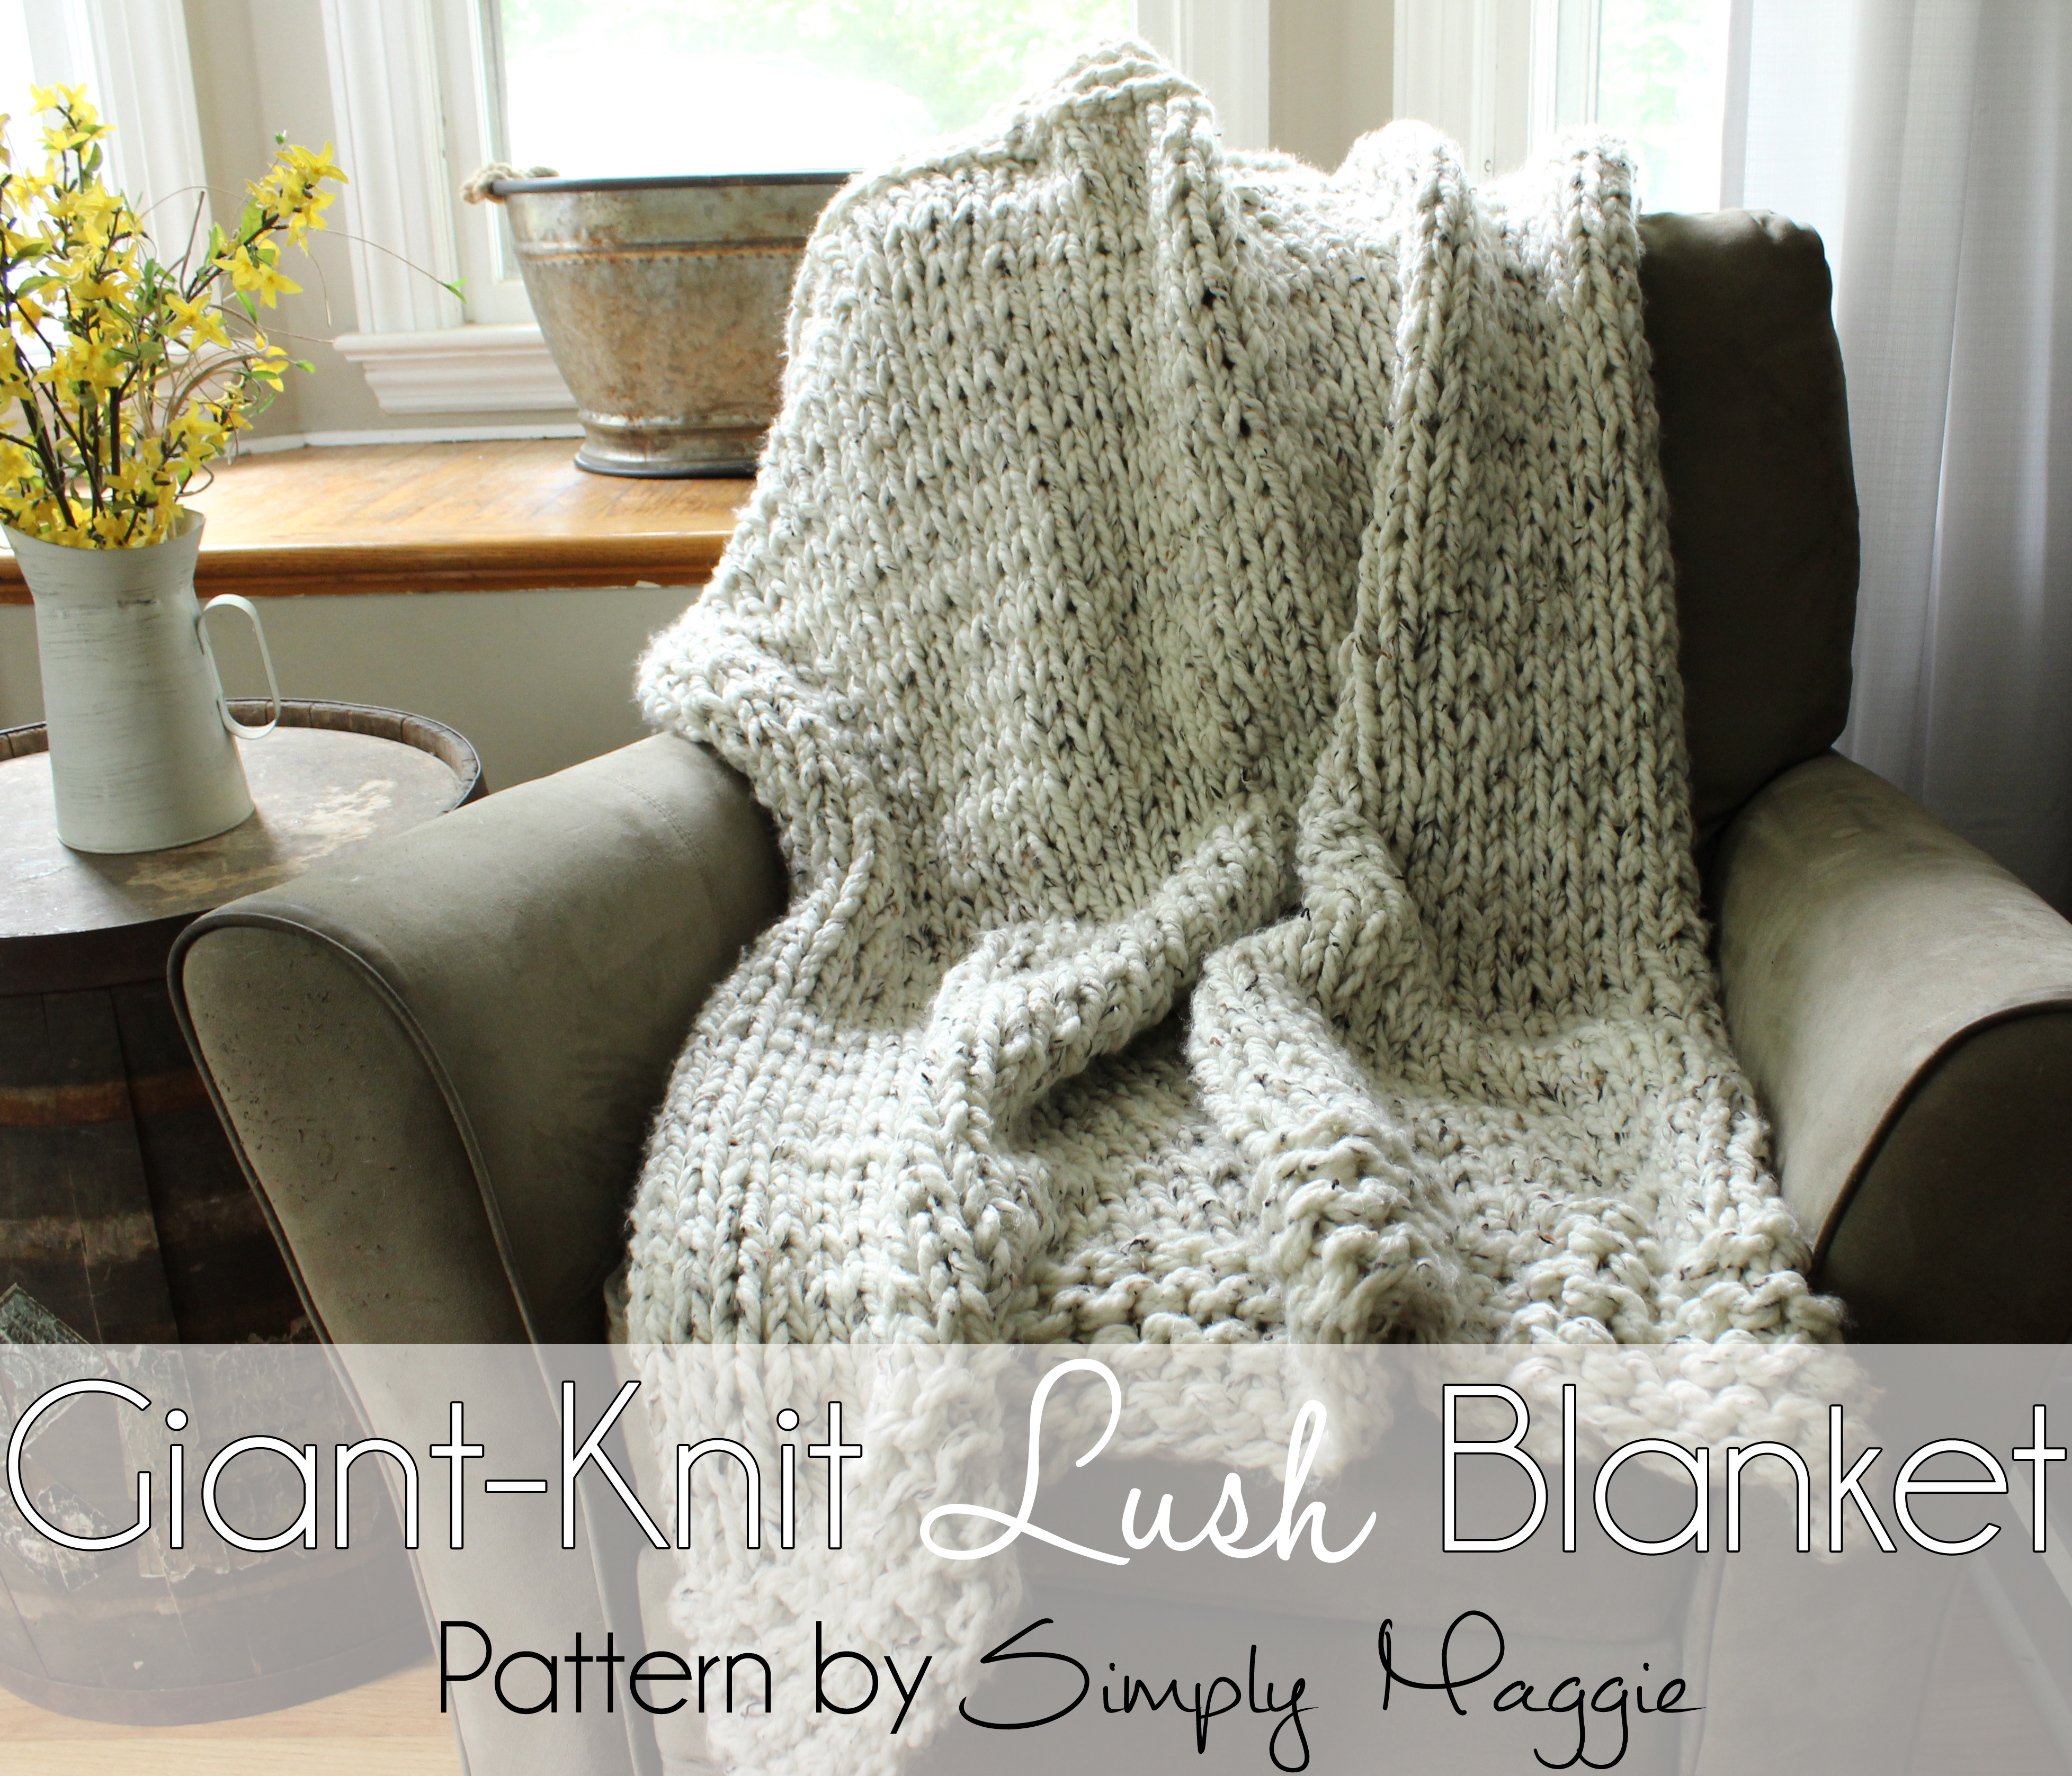 Lush knit blanket by simply maggie simplymaggie lush knit blanket pattern by simply maggie was last modified august 2nd 2017 by maggie bankloansurffo Gallery